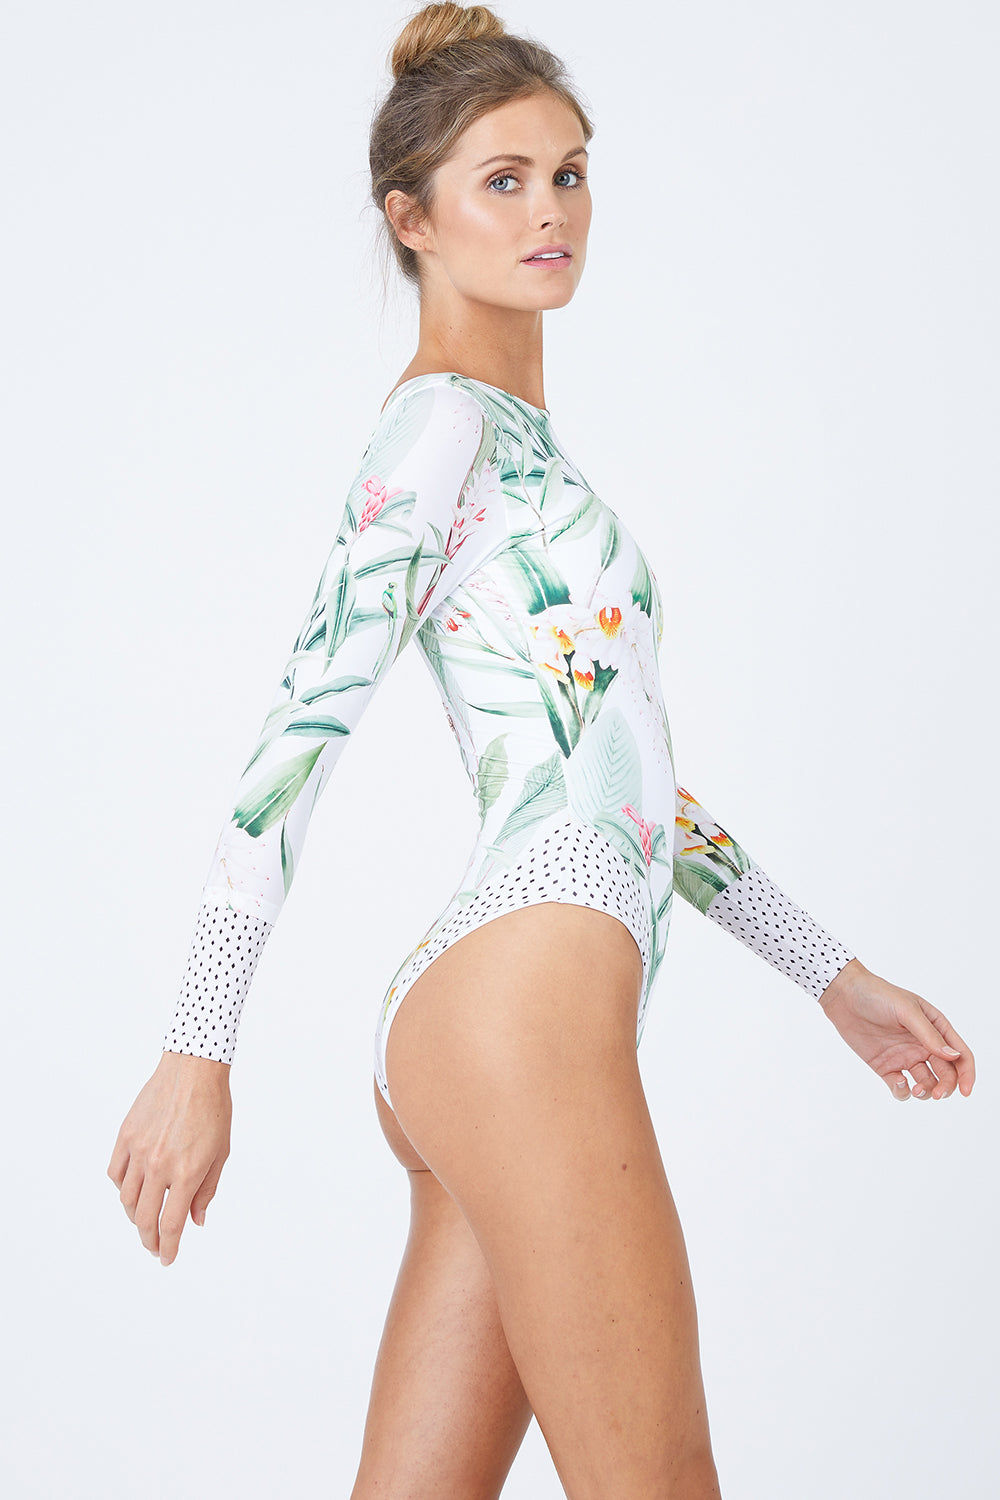 MALAI Long Sleeve Rashguard One Piece Swimsuit - Silent Vegflor One Piece | Silent Vegflor| Malai Long Sleeve One Piece Swimsuit - Silent Vegflor. Features:   Long Sleeves Higher Neckline  Scoop Back High Cut Leg  Cheeky Coverage Front View